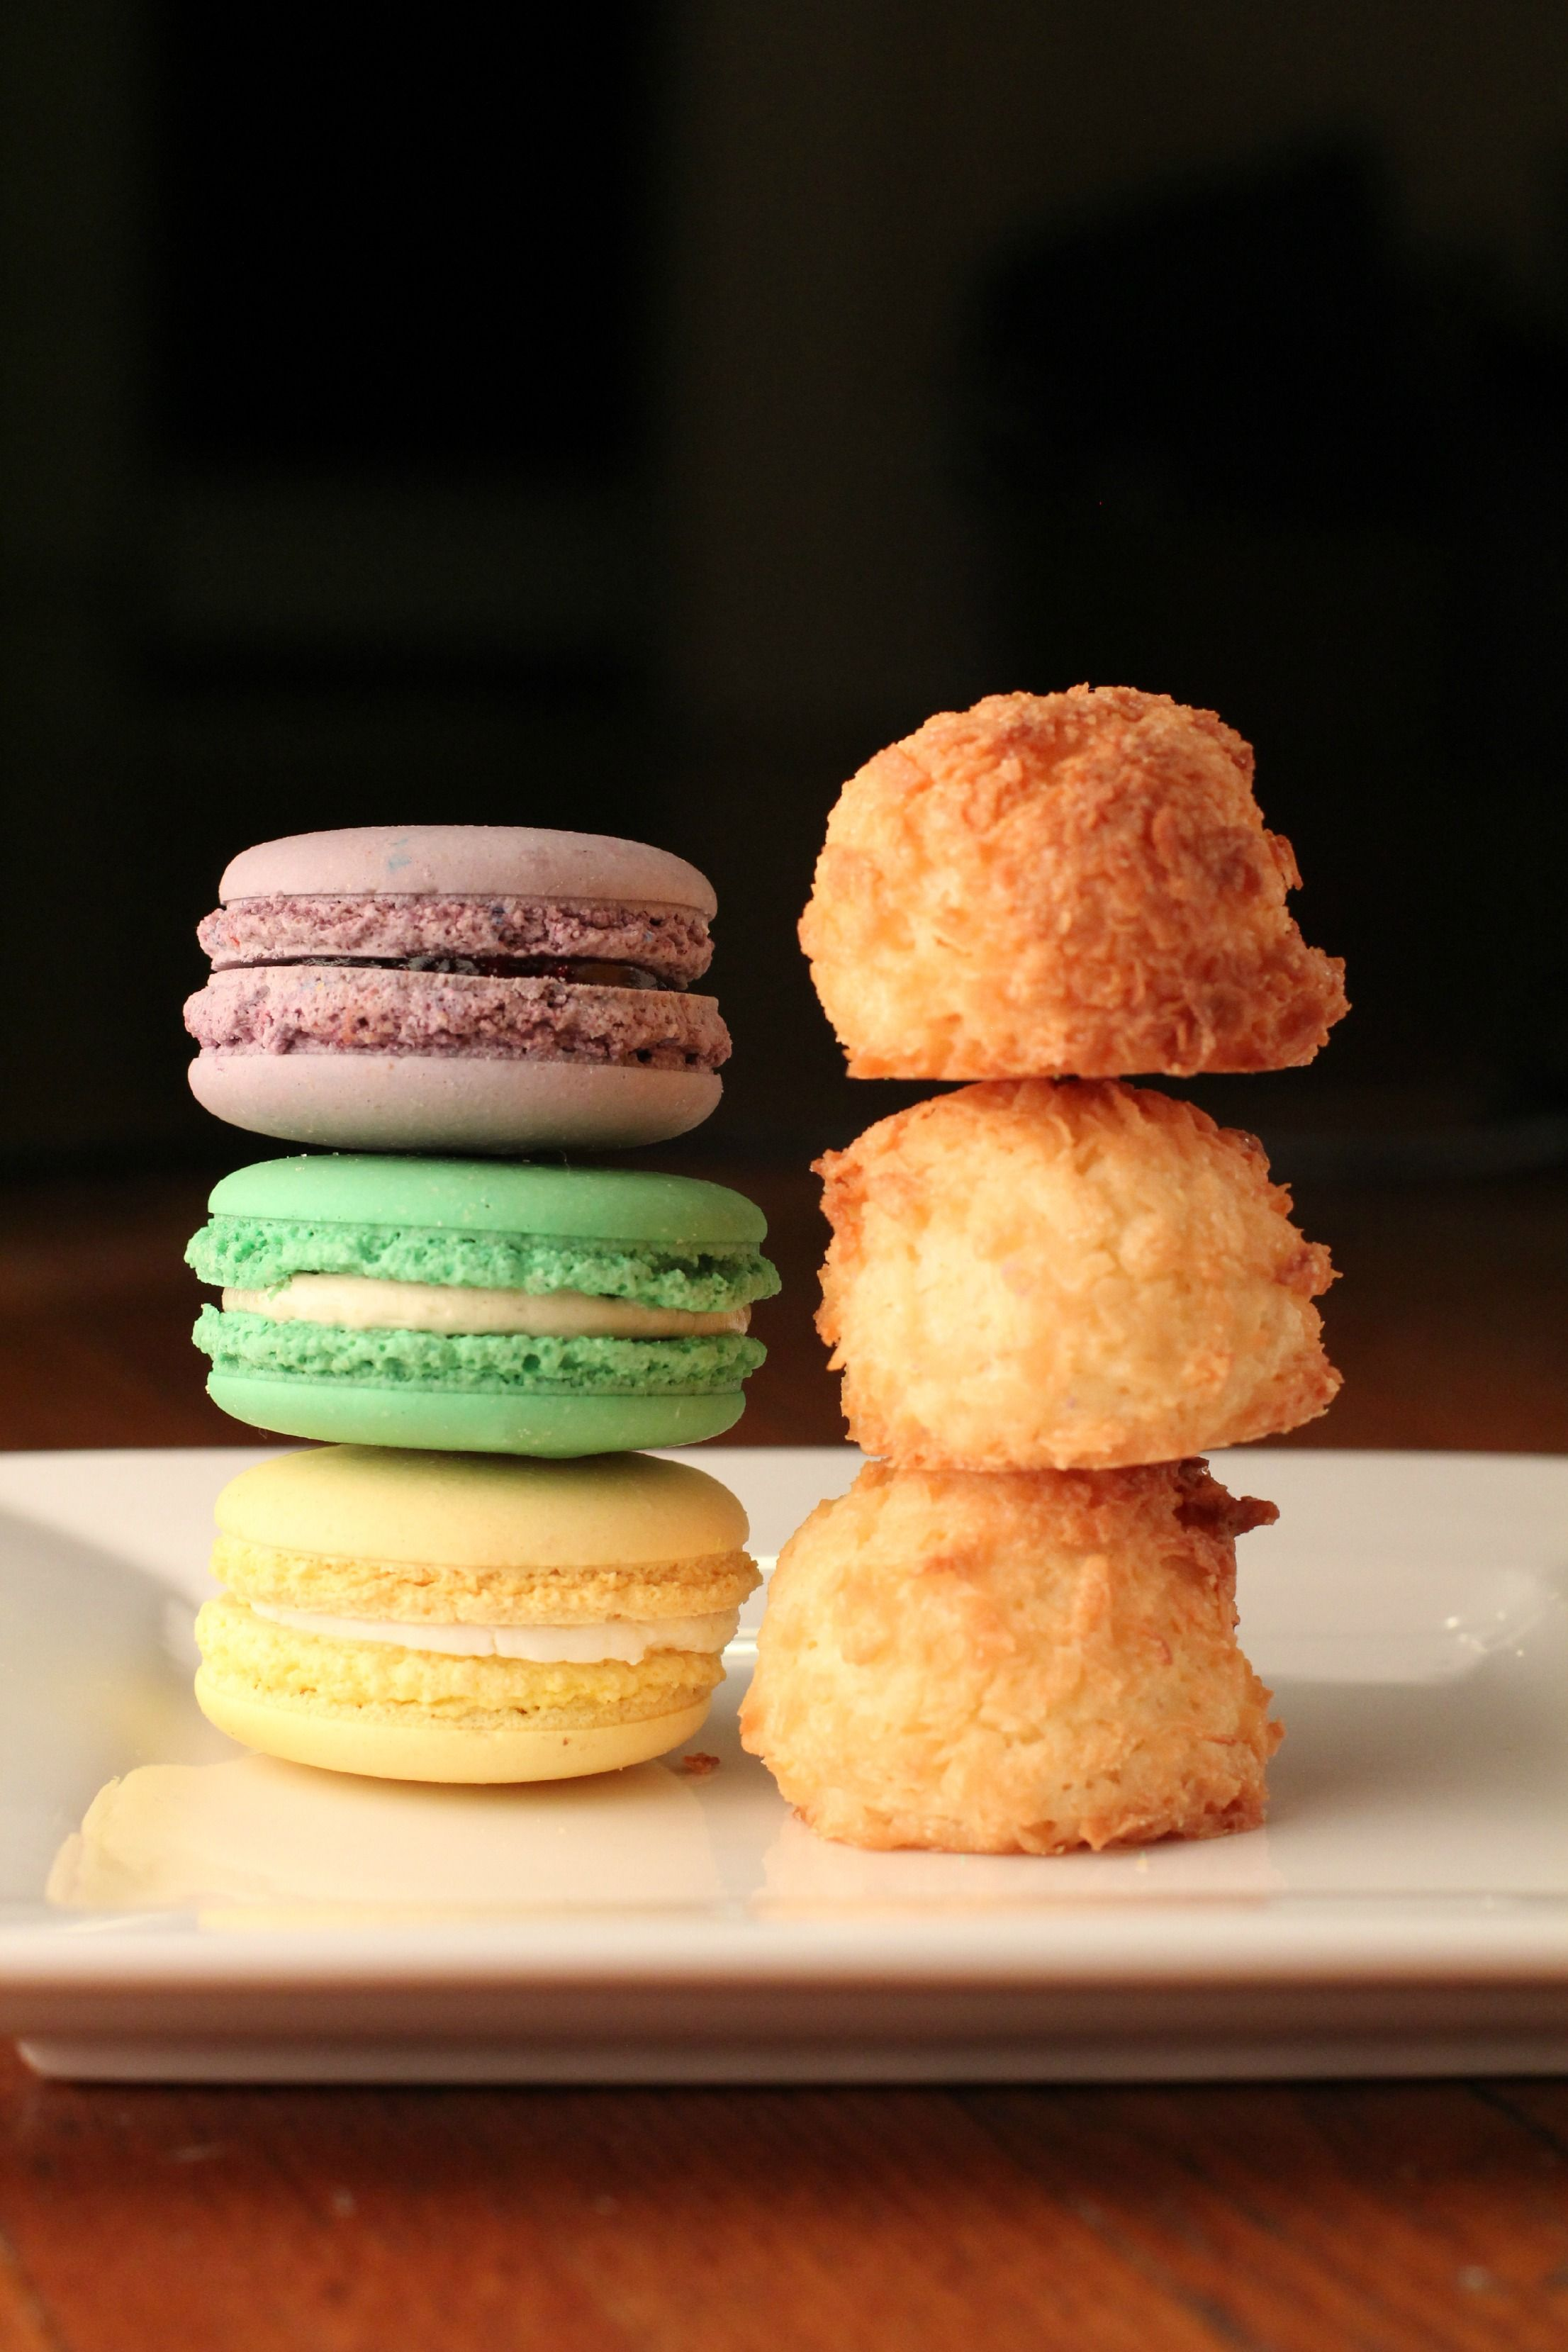 It S All About The O Urbanspoon Blog Macarons Macaroons Macaroons Pastry Desserts Food